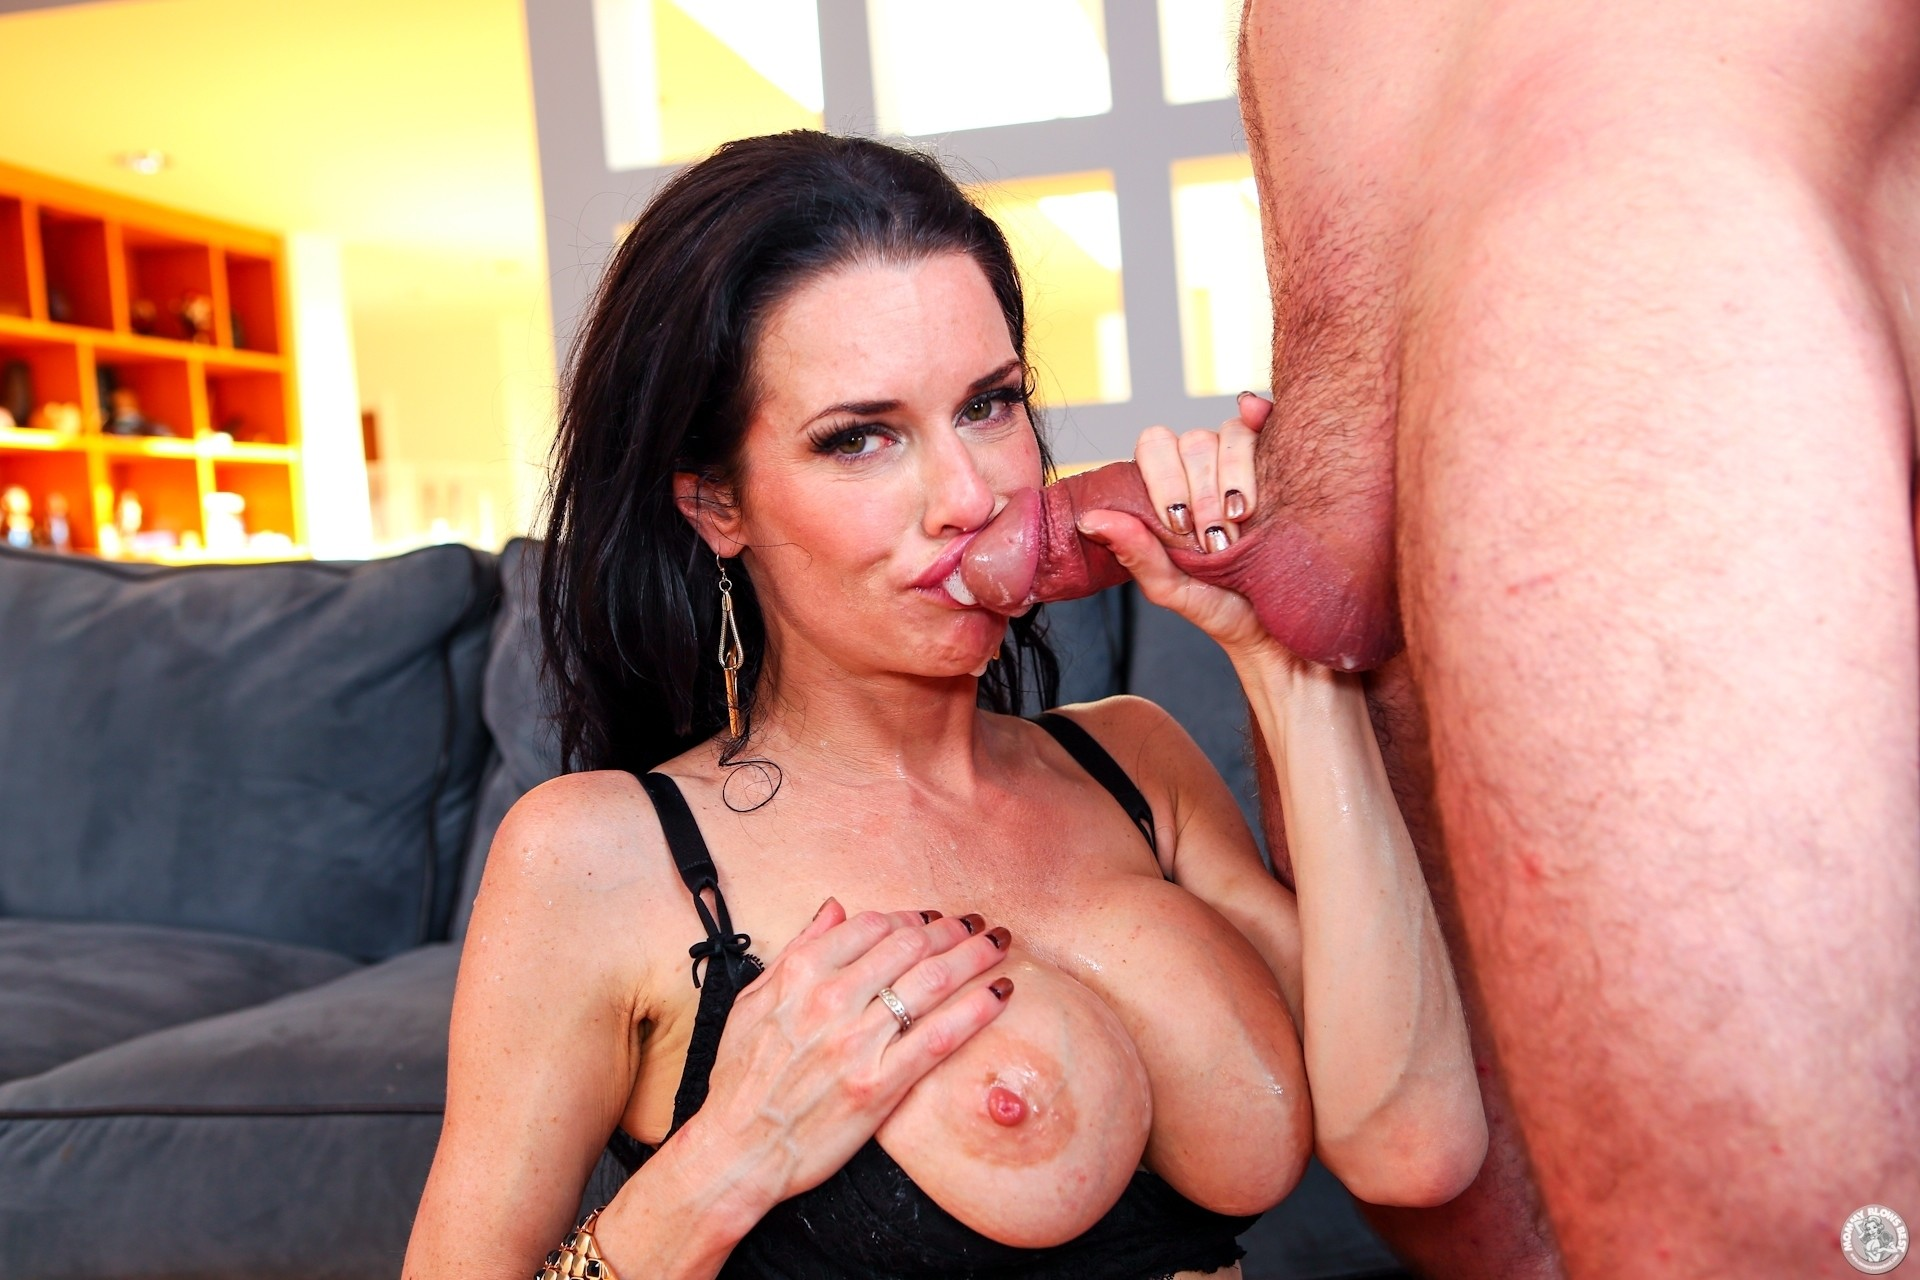 Hot Milf Neighbor Comes Over To Give Me A Blowjob